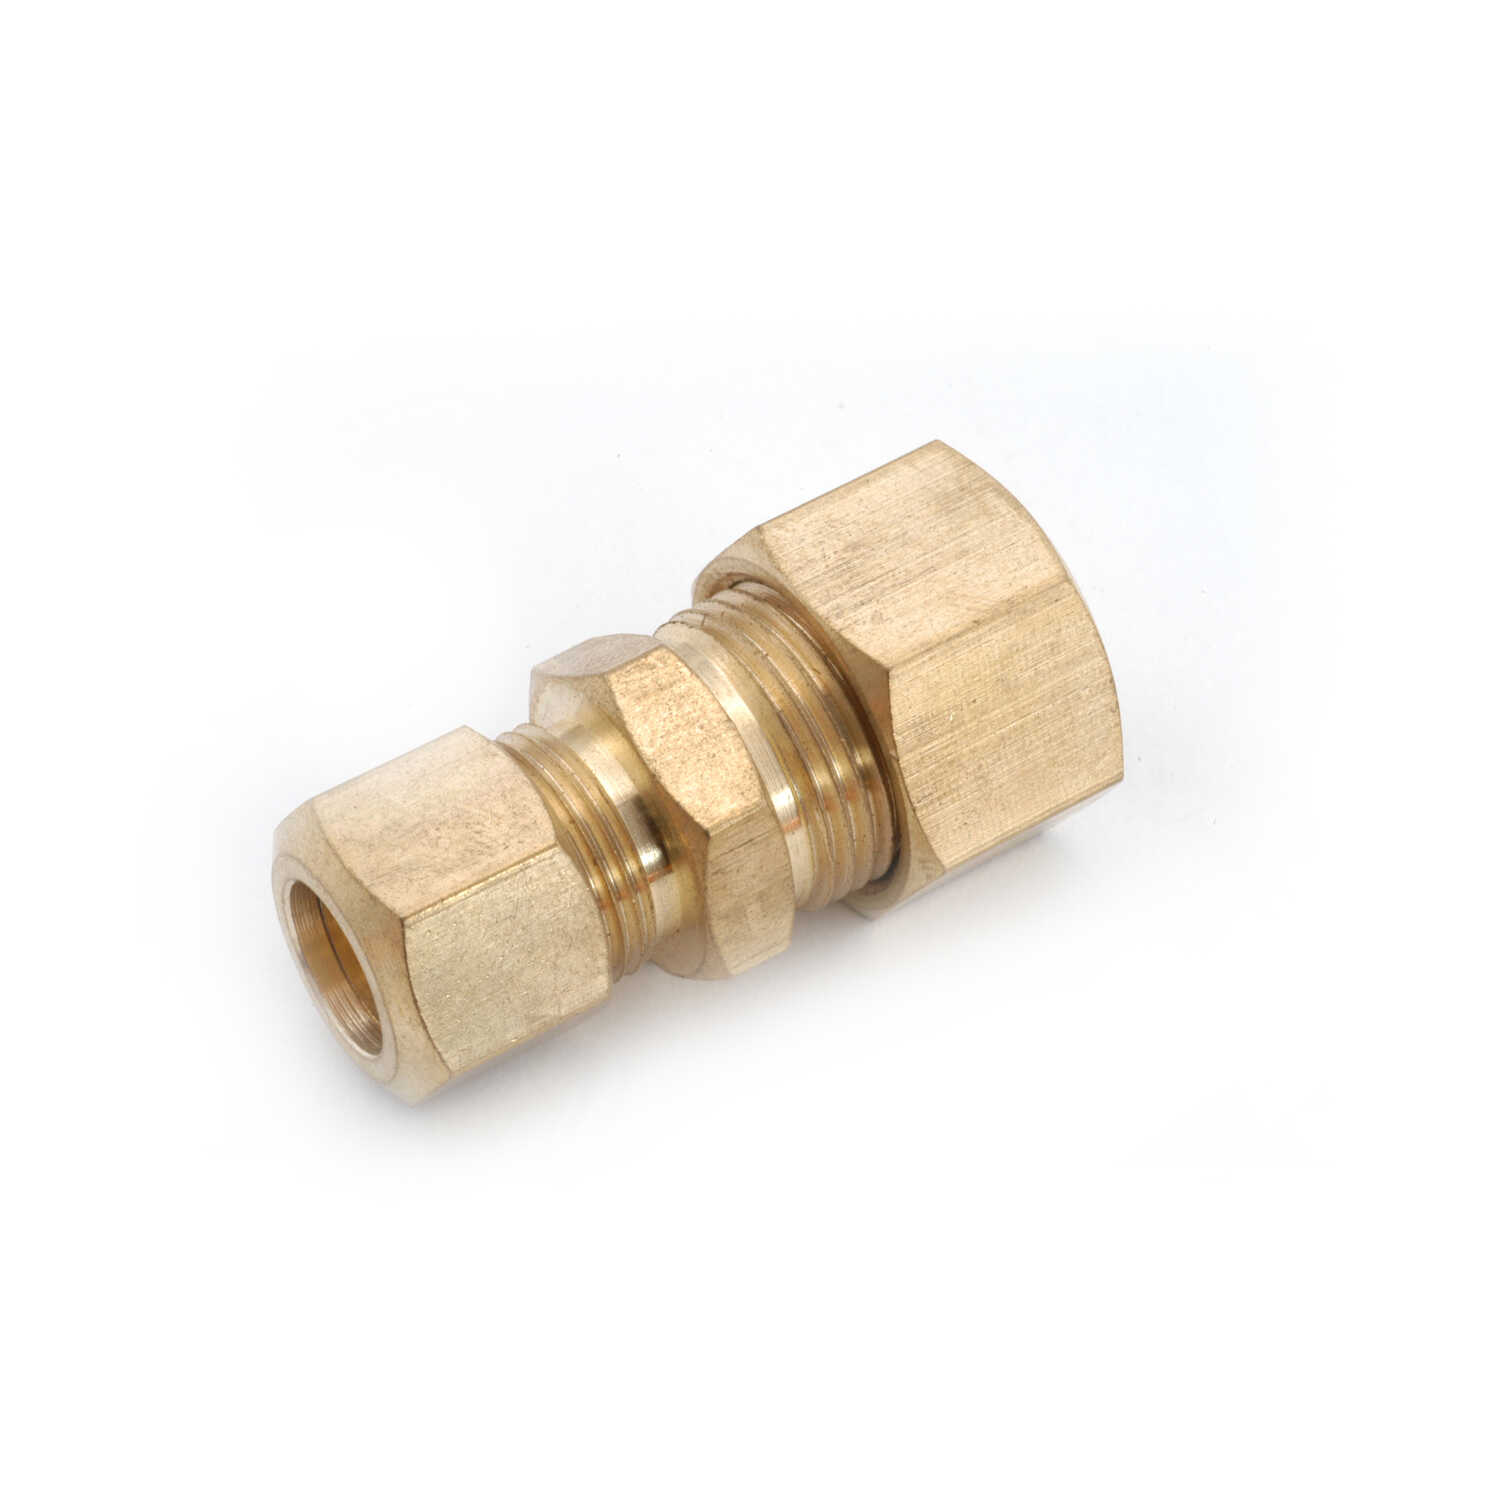 Anderson Metals Corporations  1/2 in. Compression   x 3/8 in. Dia. Compression  Brass  Reducing Unio